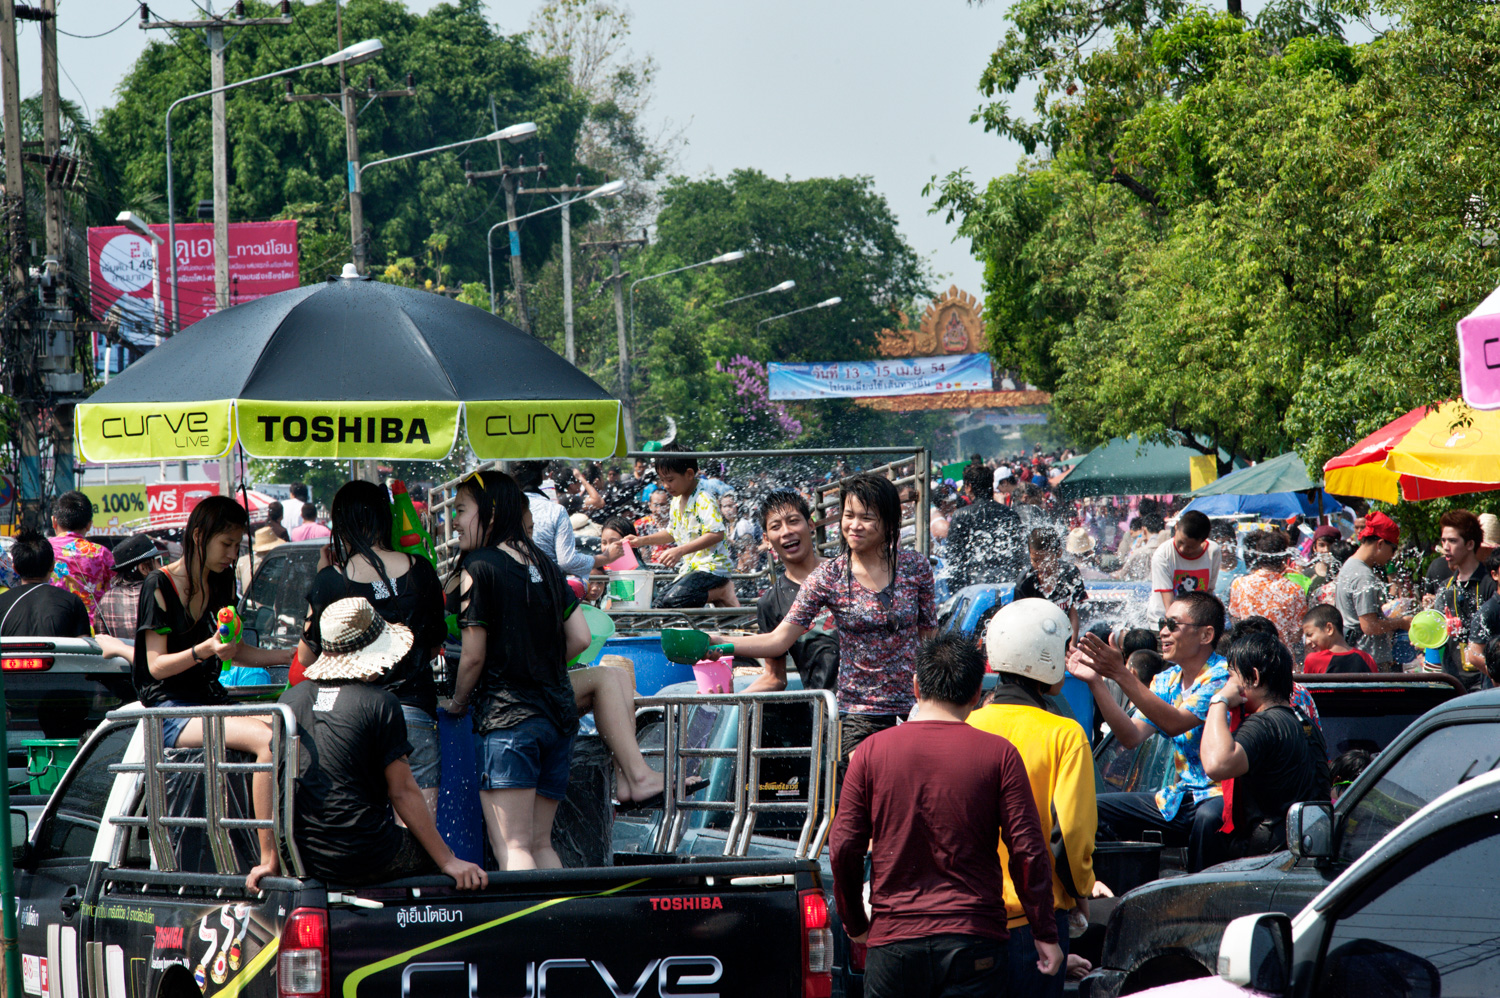 When should you obtain a model or property release? Songkran party in Chiang Mai